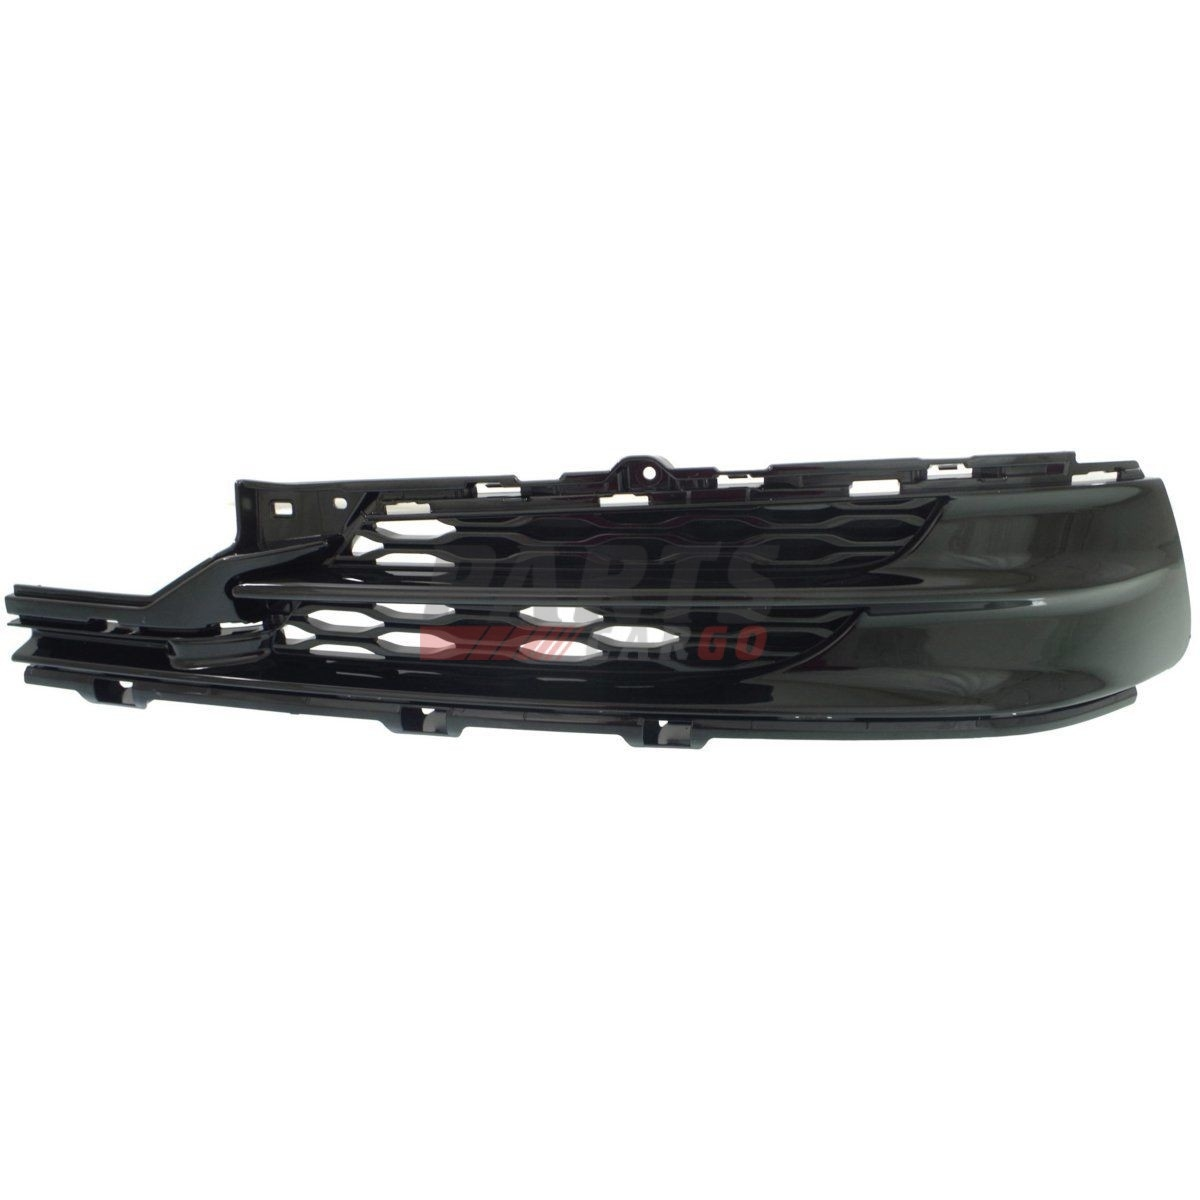 NEW BUMPER GRILLE PAINTED BLACK FRONT LEFT FITS 2015-2017